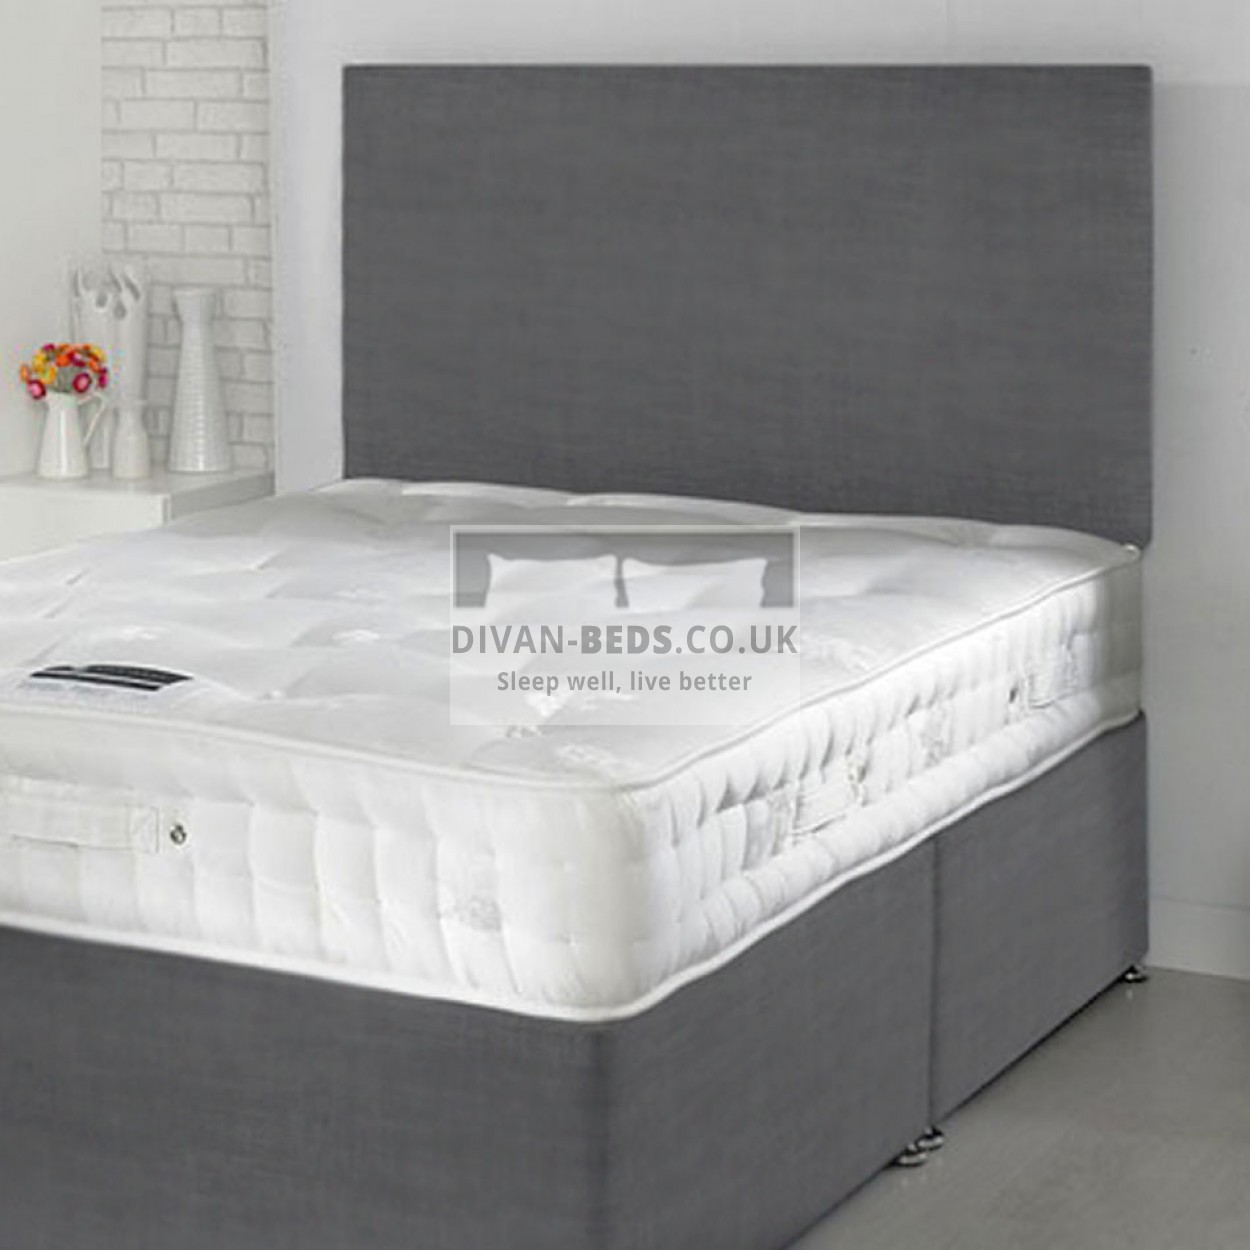 Fergus Divan Bed With 1500 Pocket Spring Memory Foam Mattress Guaranteed Cheapest Free